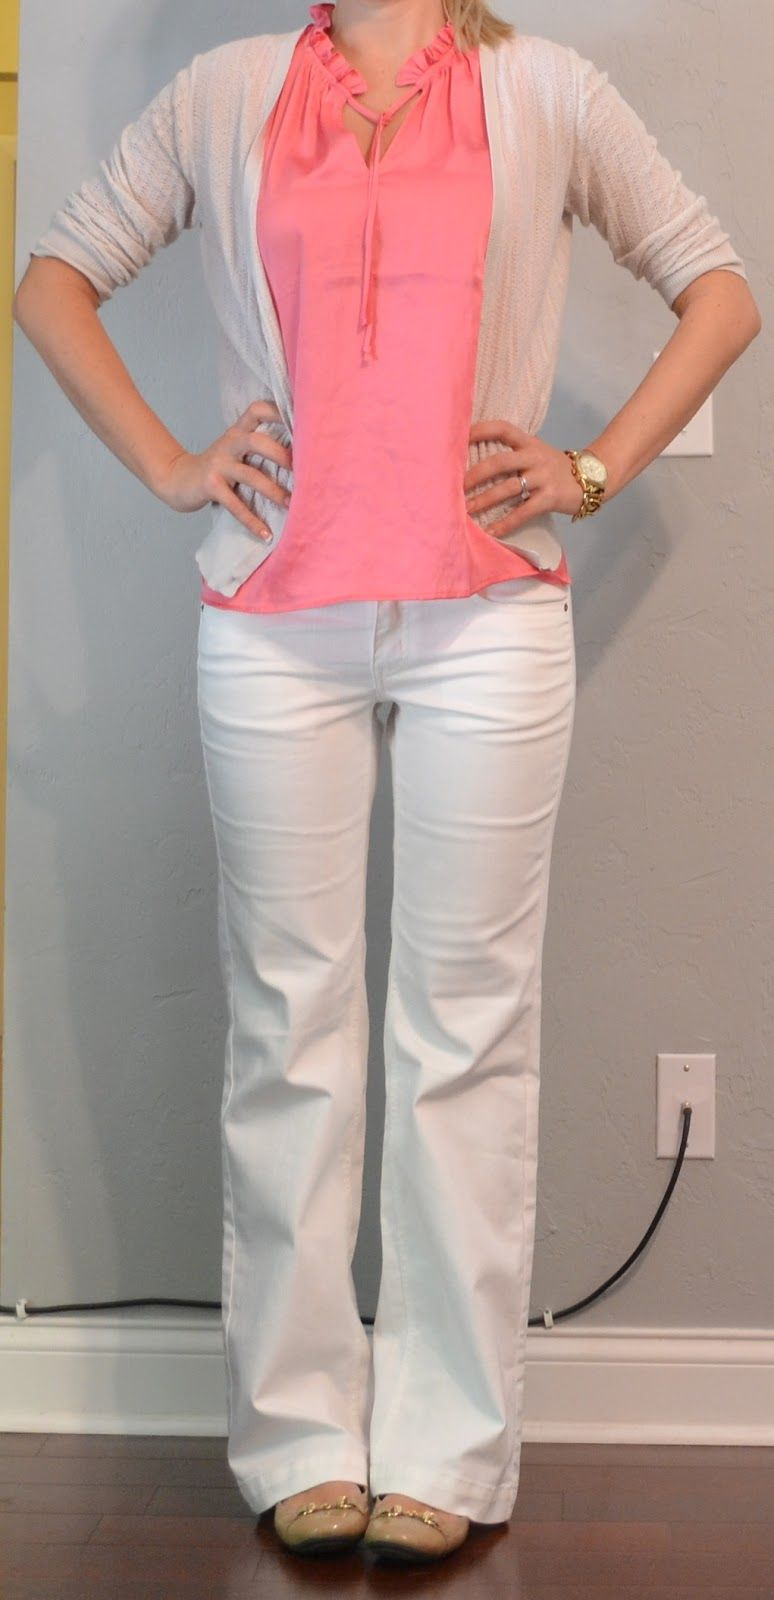 outfit post: coral top, white pants, cream cardigan - Outfit Post: Coral Top, White Pants, Cream Cardigan Style